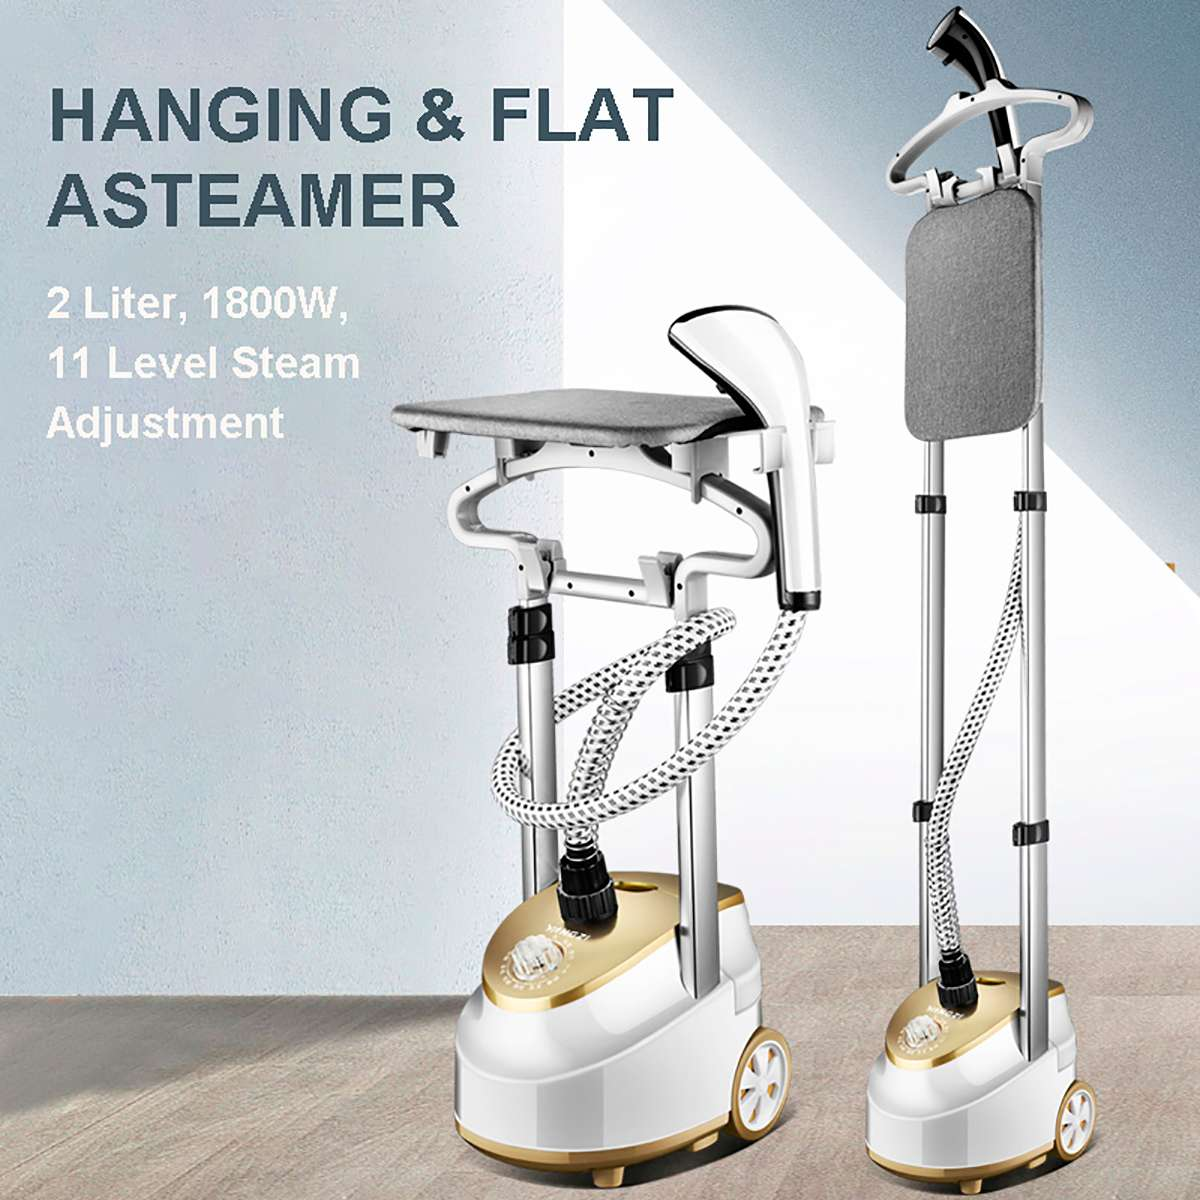 1800W Garment Steamer Household Handheld Ironing Machine 10 Gear Adjustable Vertical Flat Steam Iron Clothes Steamer